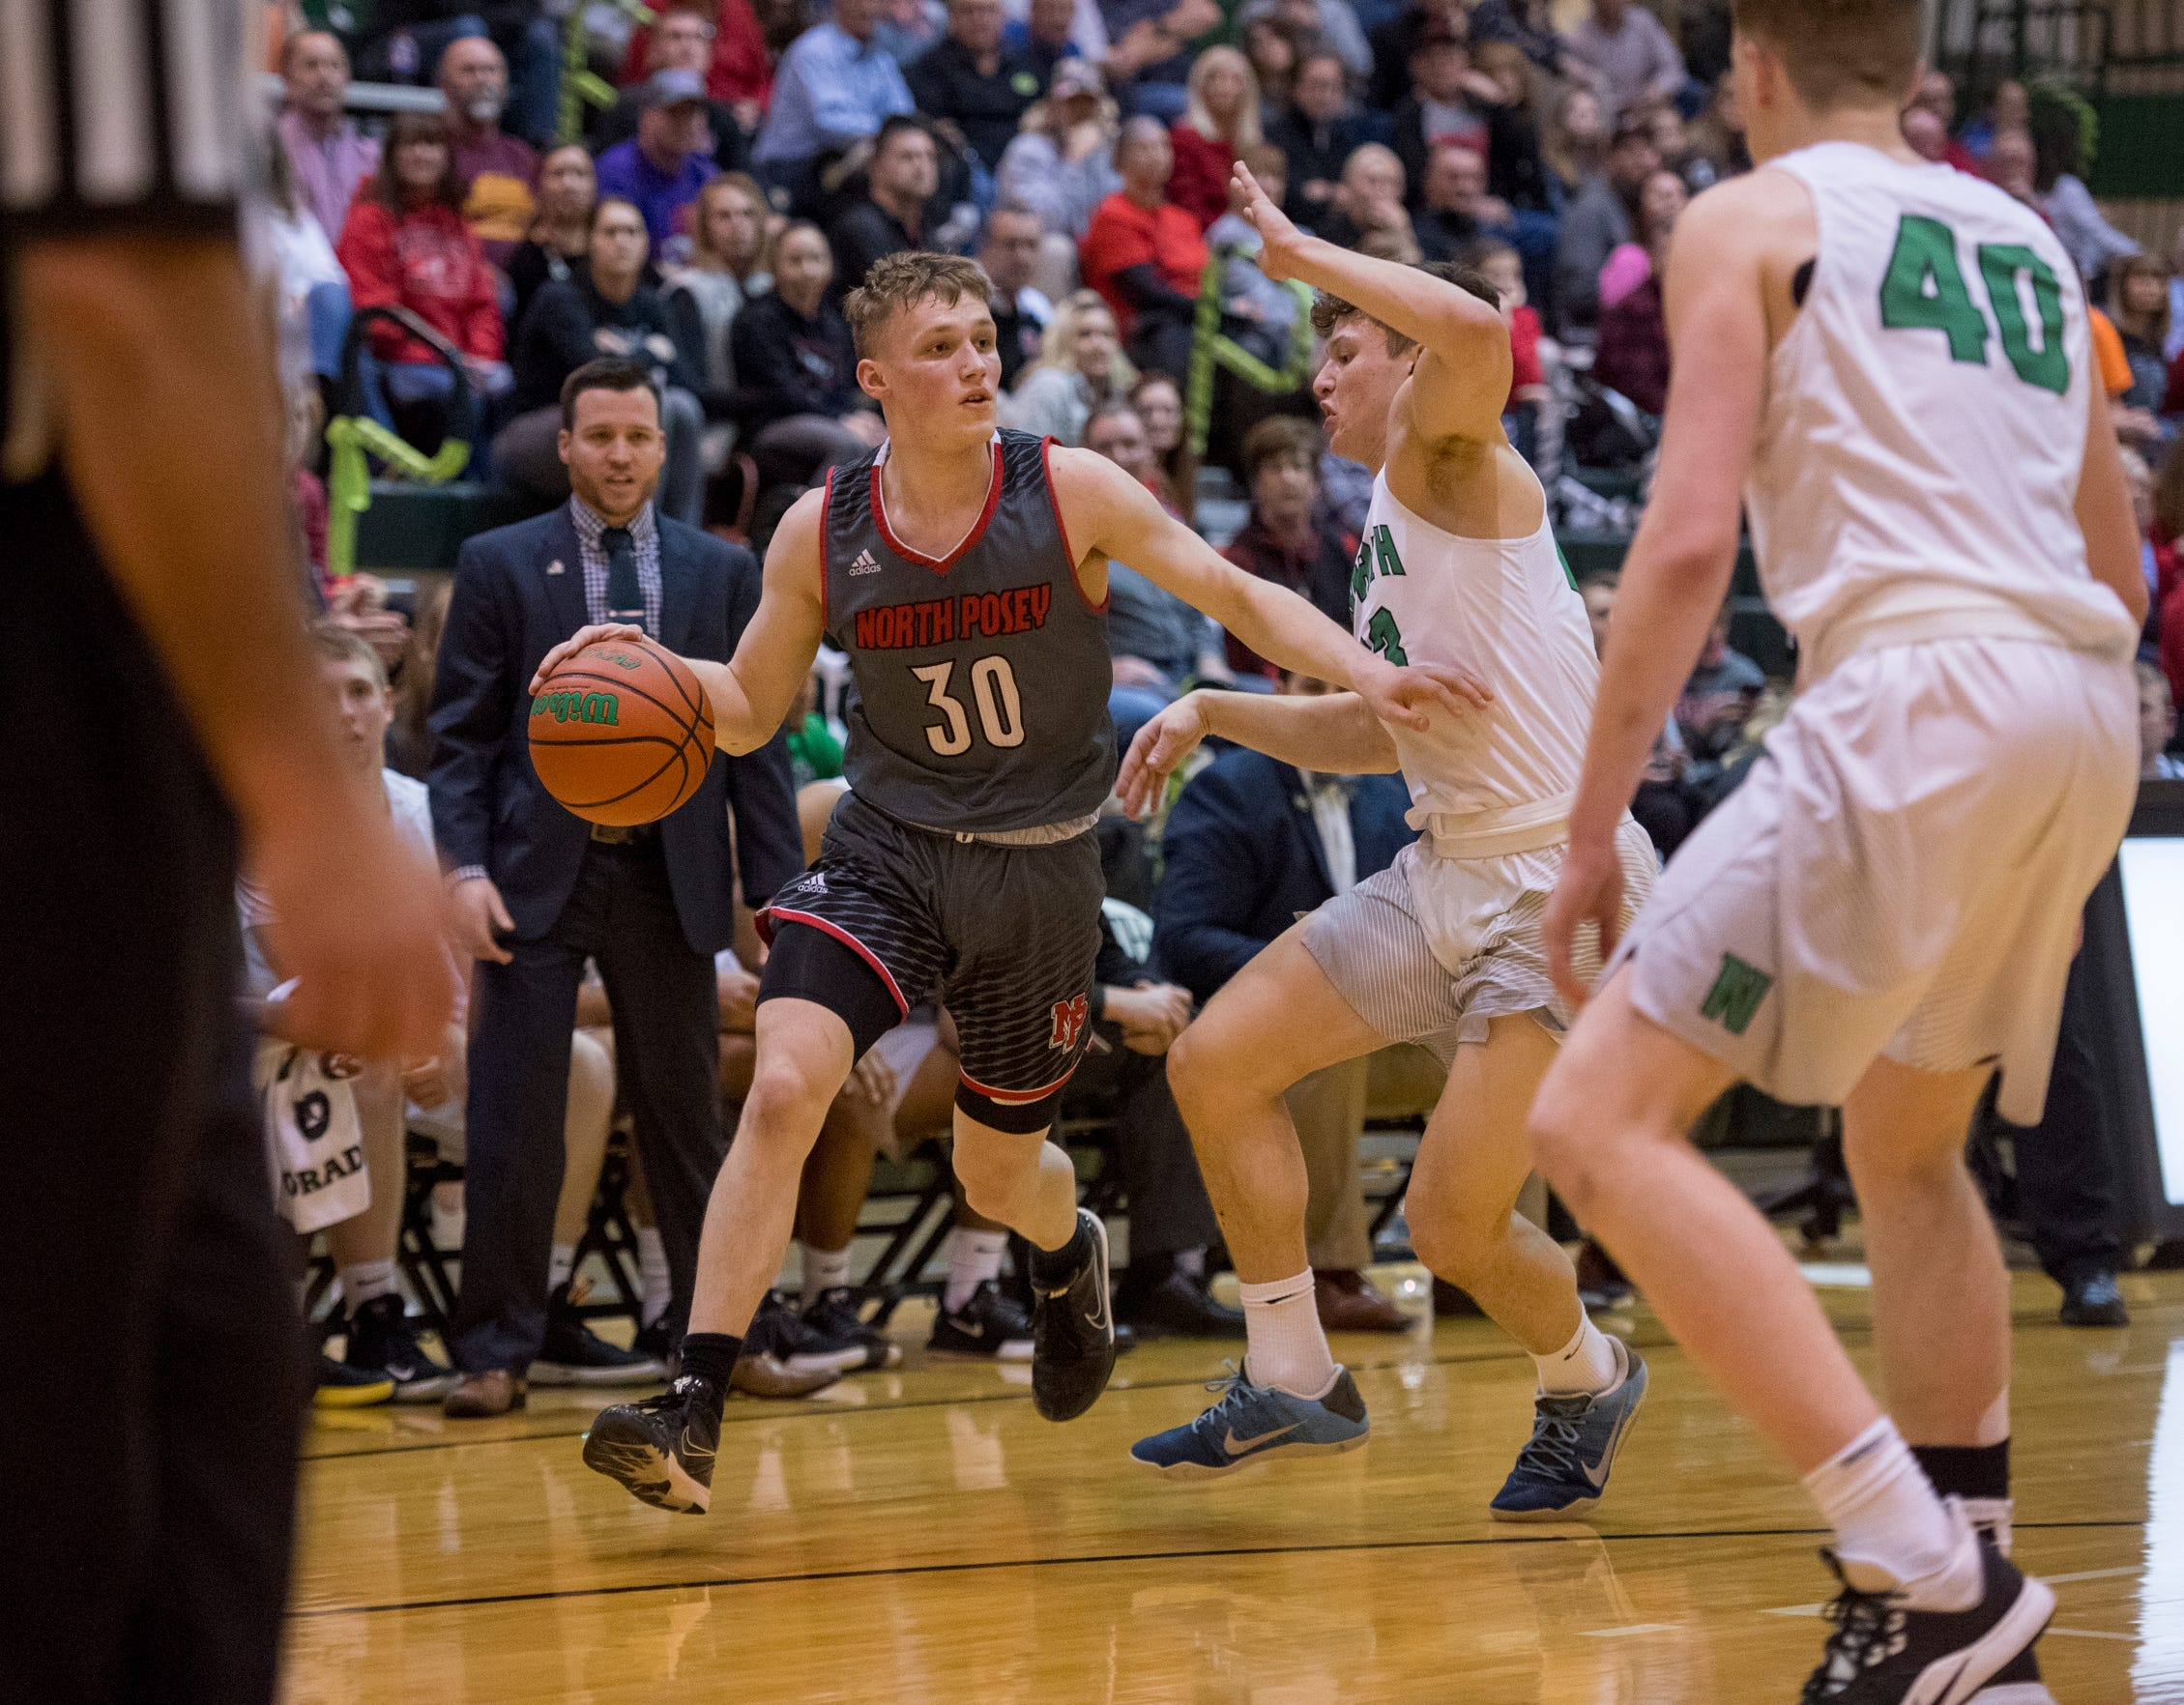 North Posey's Josiah Ricketts (30) looks for an open man during the North Huskies vs North Posey Vikings game at North High School Wednesday evening, Feb. 5. 2020.